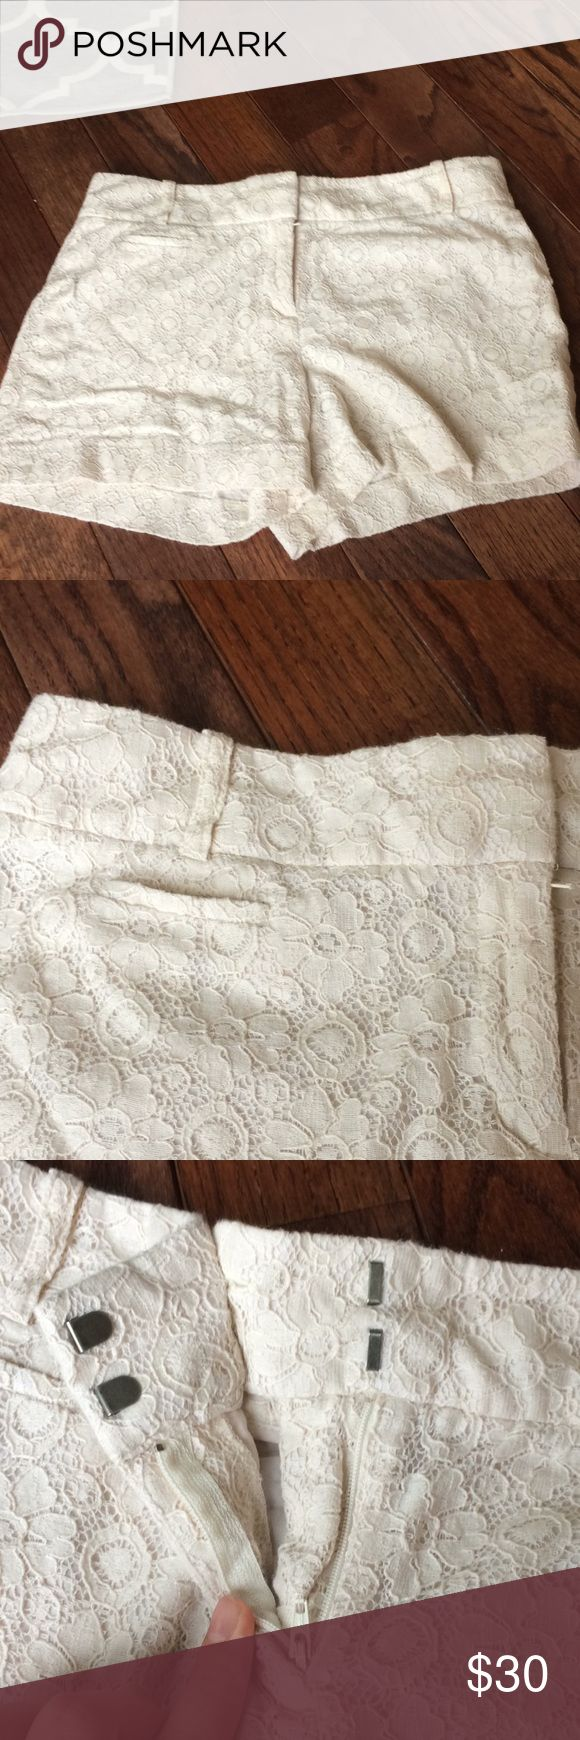 "⬇️☀️LOFT Flirty-fun Lace The Riviera Shorts These fun-flirty shorts are perfect for your warm winter vacation! Like new, these cream lace shorts won't disappoint. Size 6 with 3"" inseam.  74% cotton 26% nylon. Bundle with the other 3? LOFT Shorts"